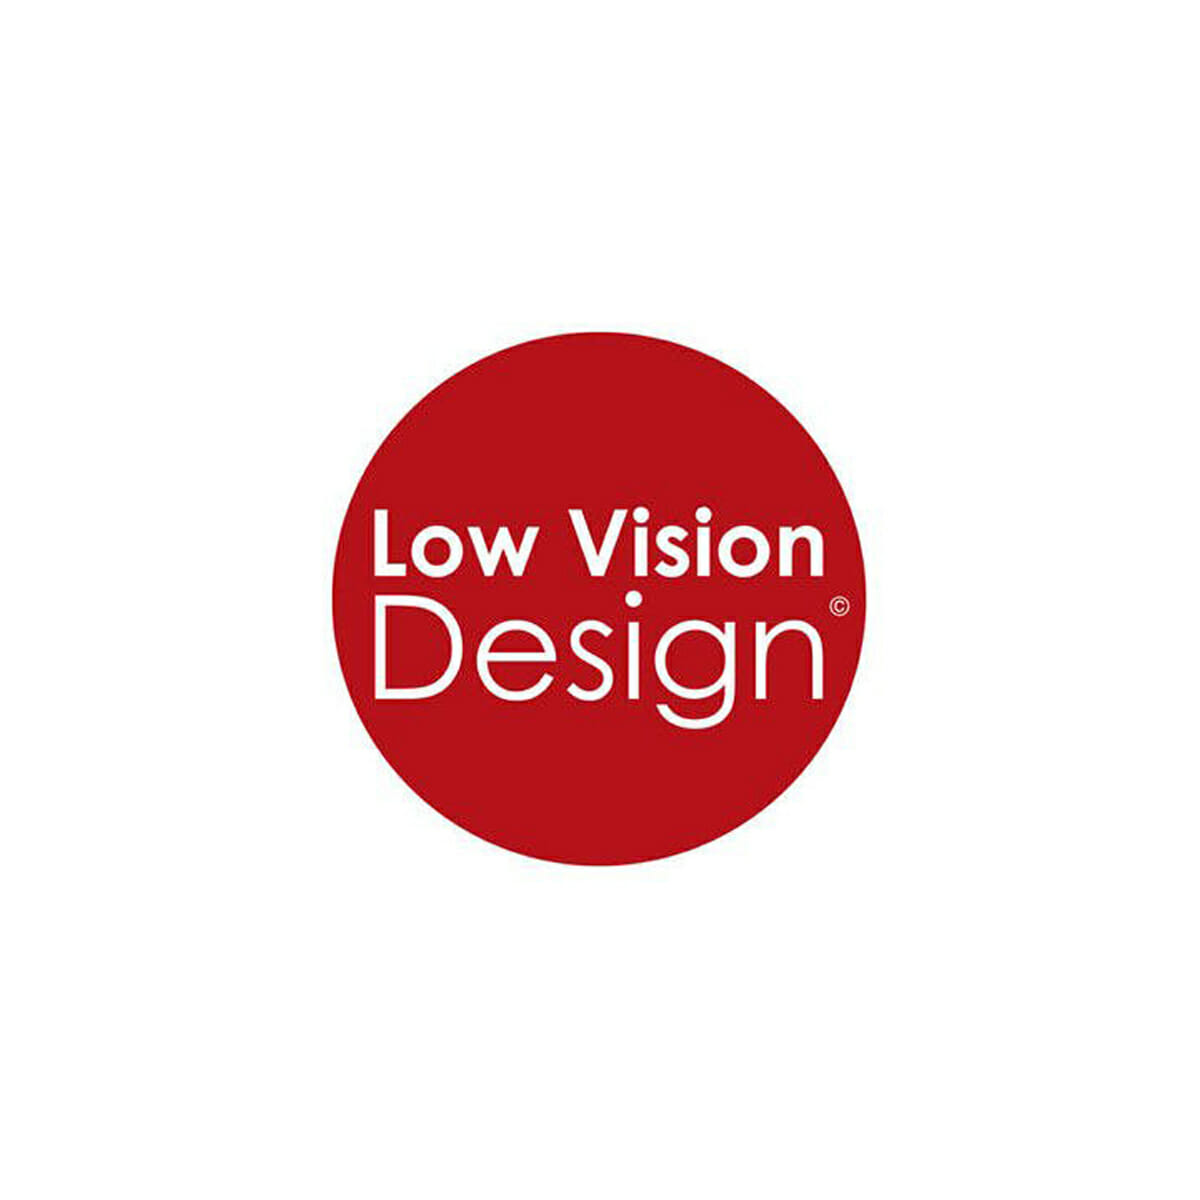 Low vision design logo